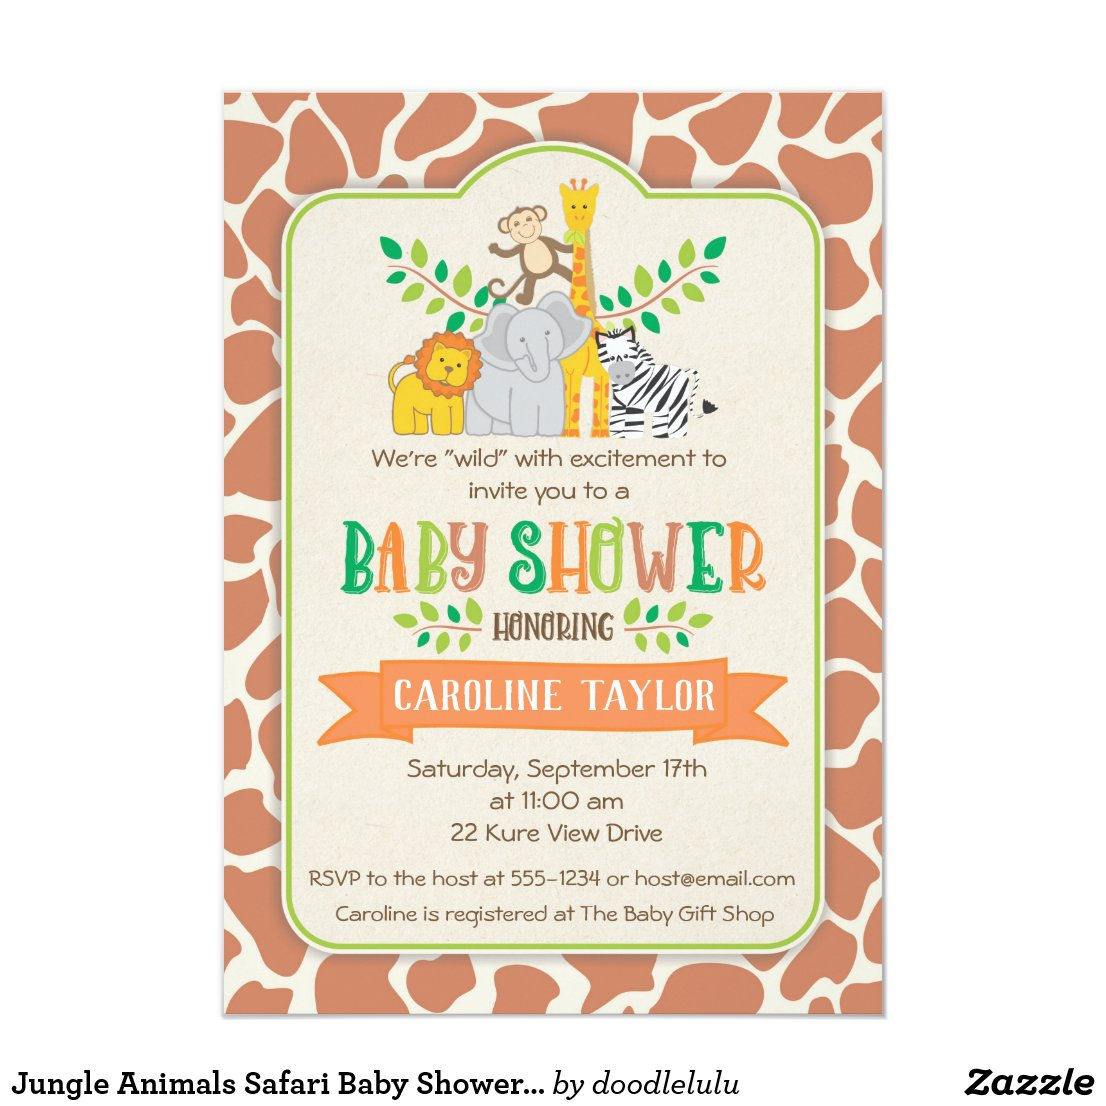 Jungle Animals Safari Baby Shower Invitation